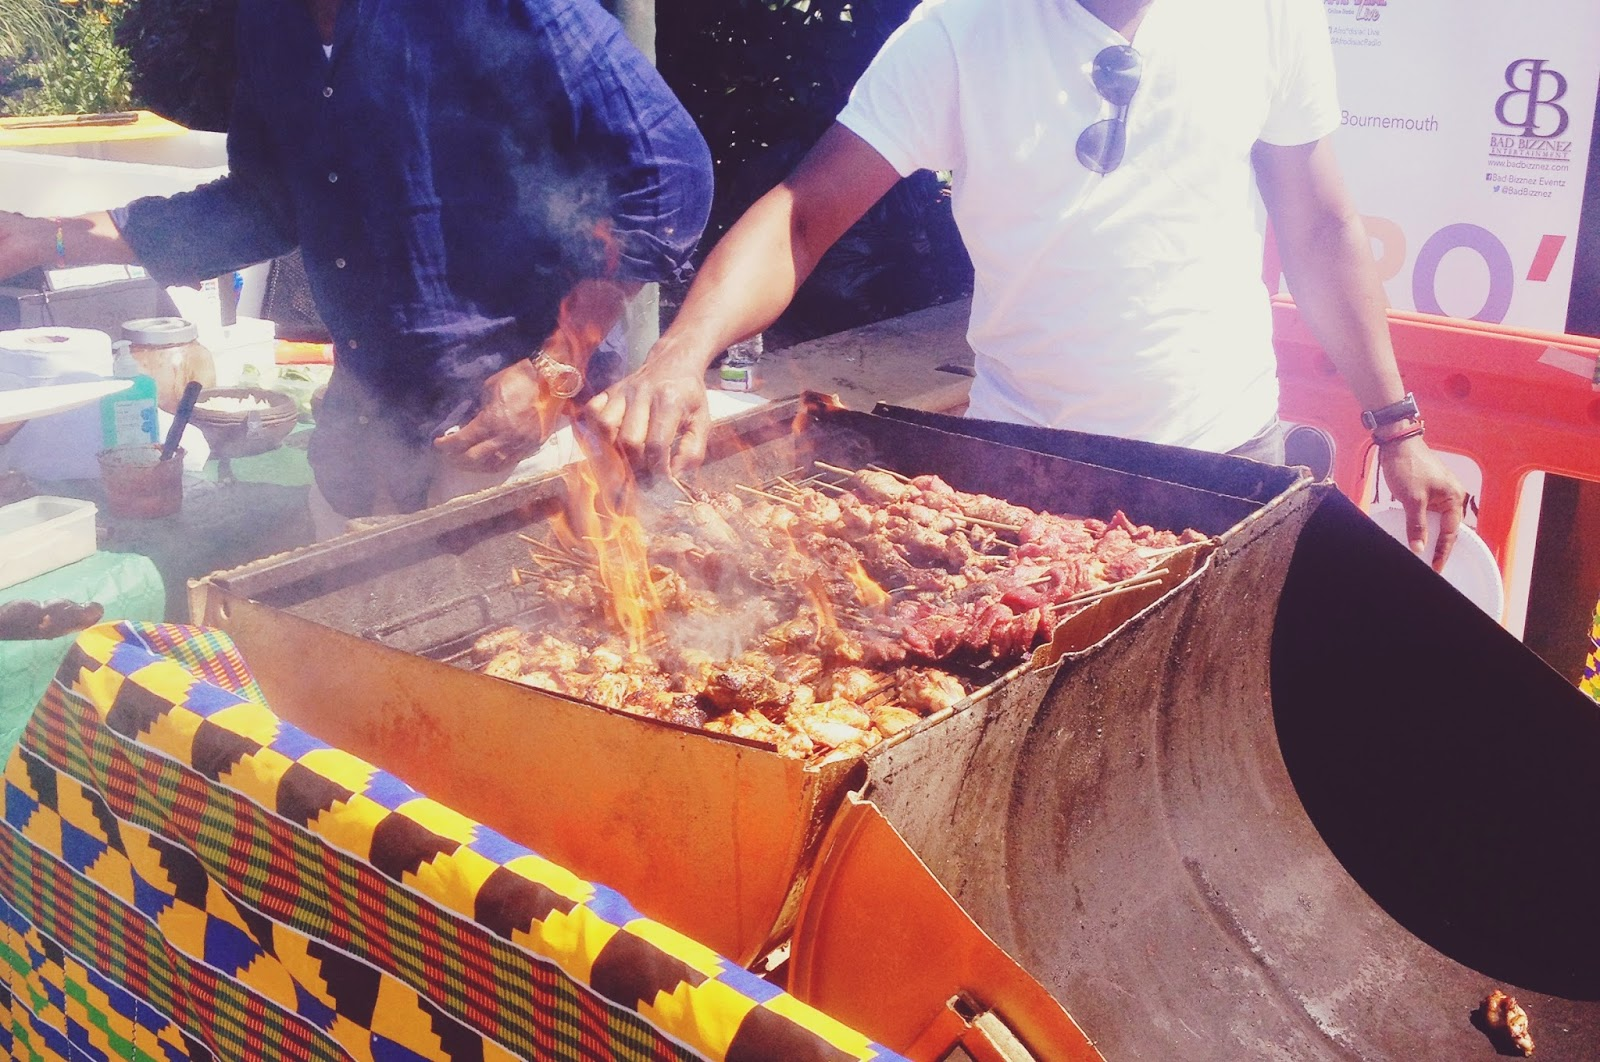 The Bournemouth Food and Drink Festival, food blog